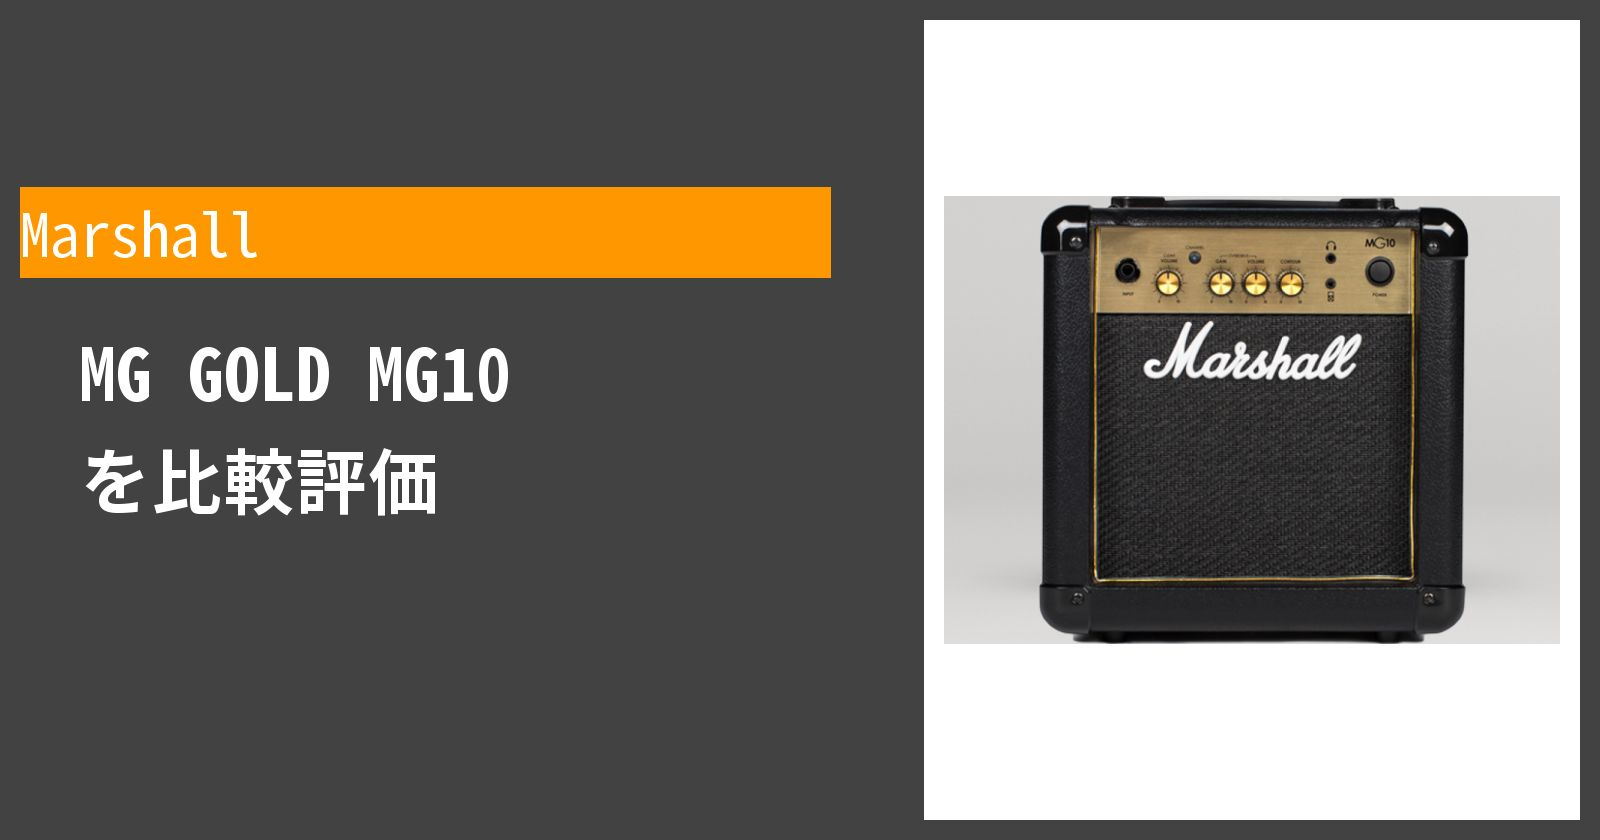 MG GOLD MG10を徹底評価